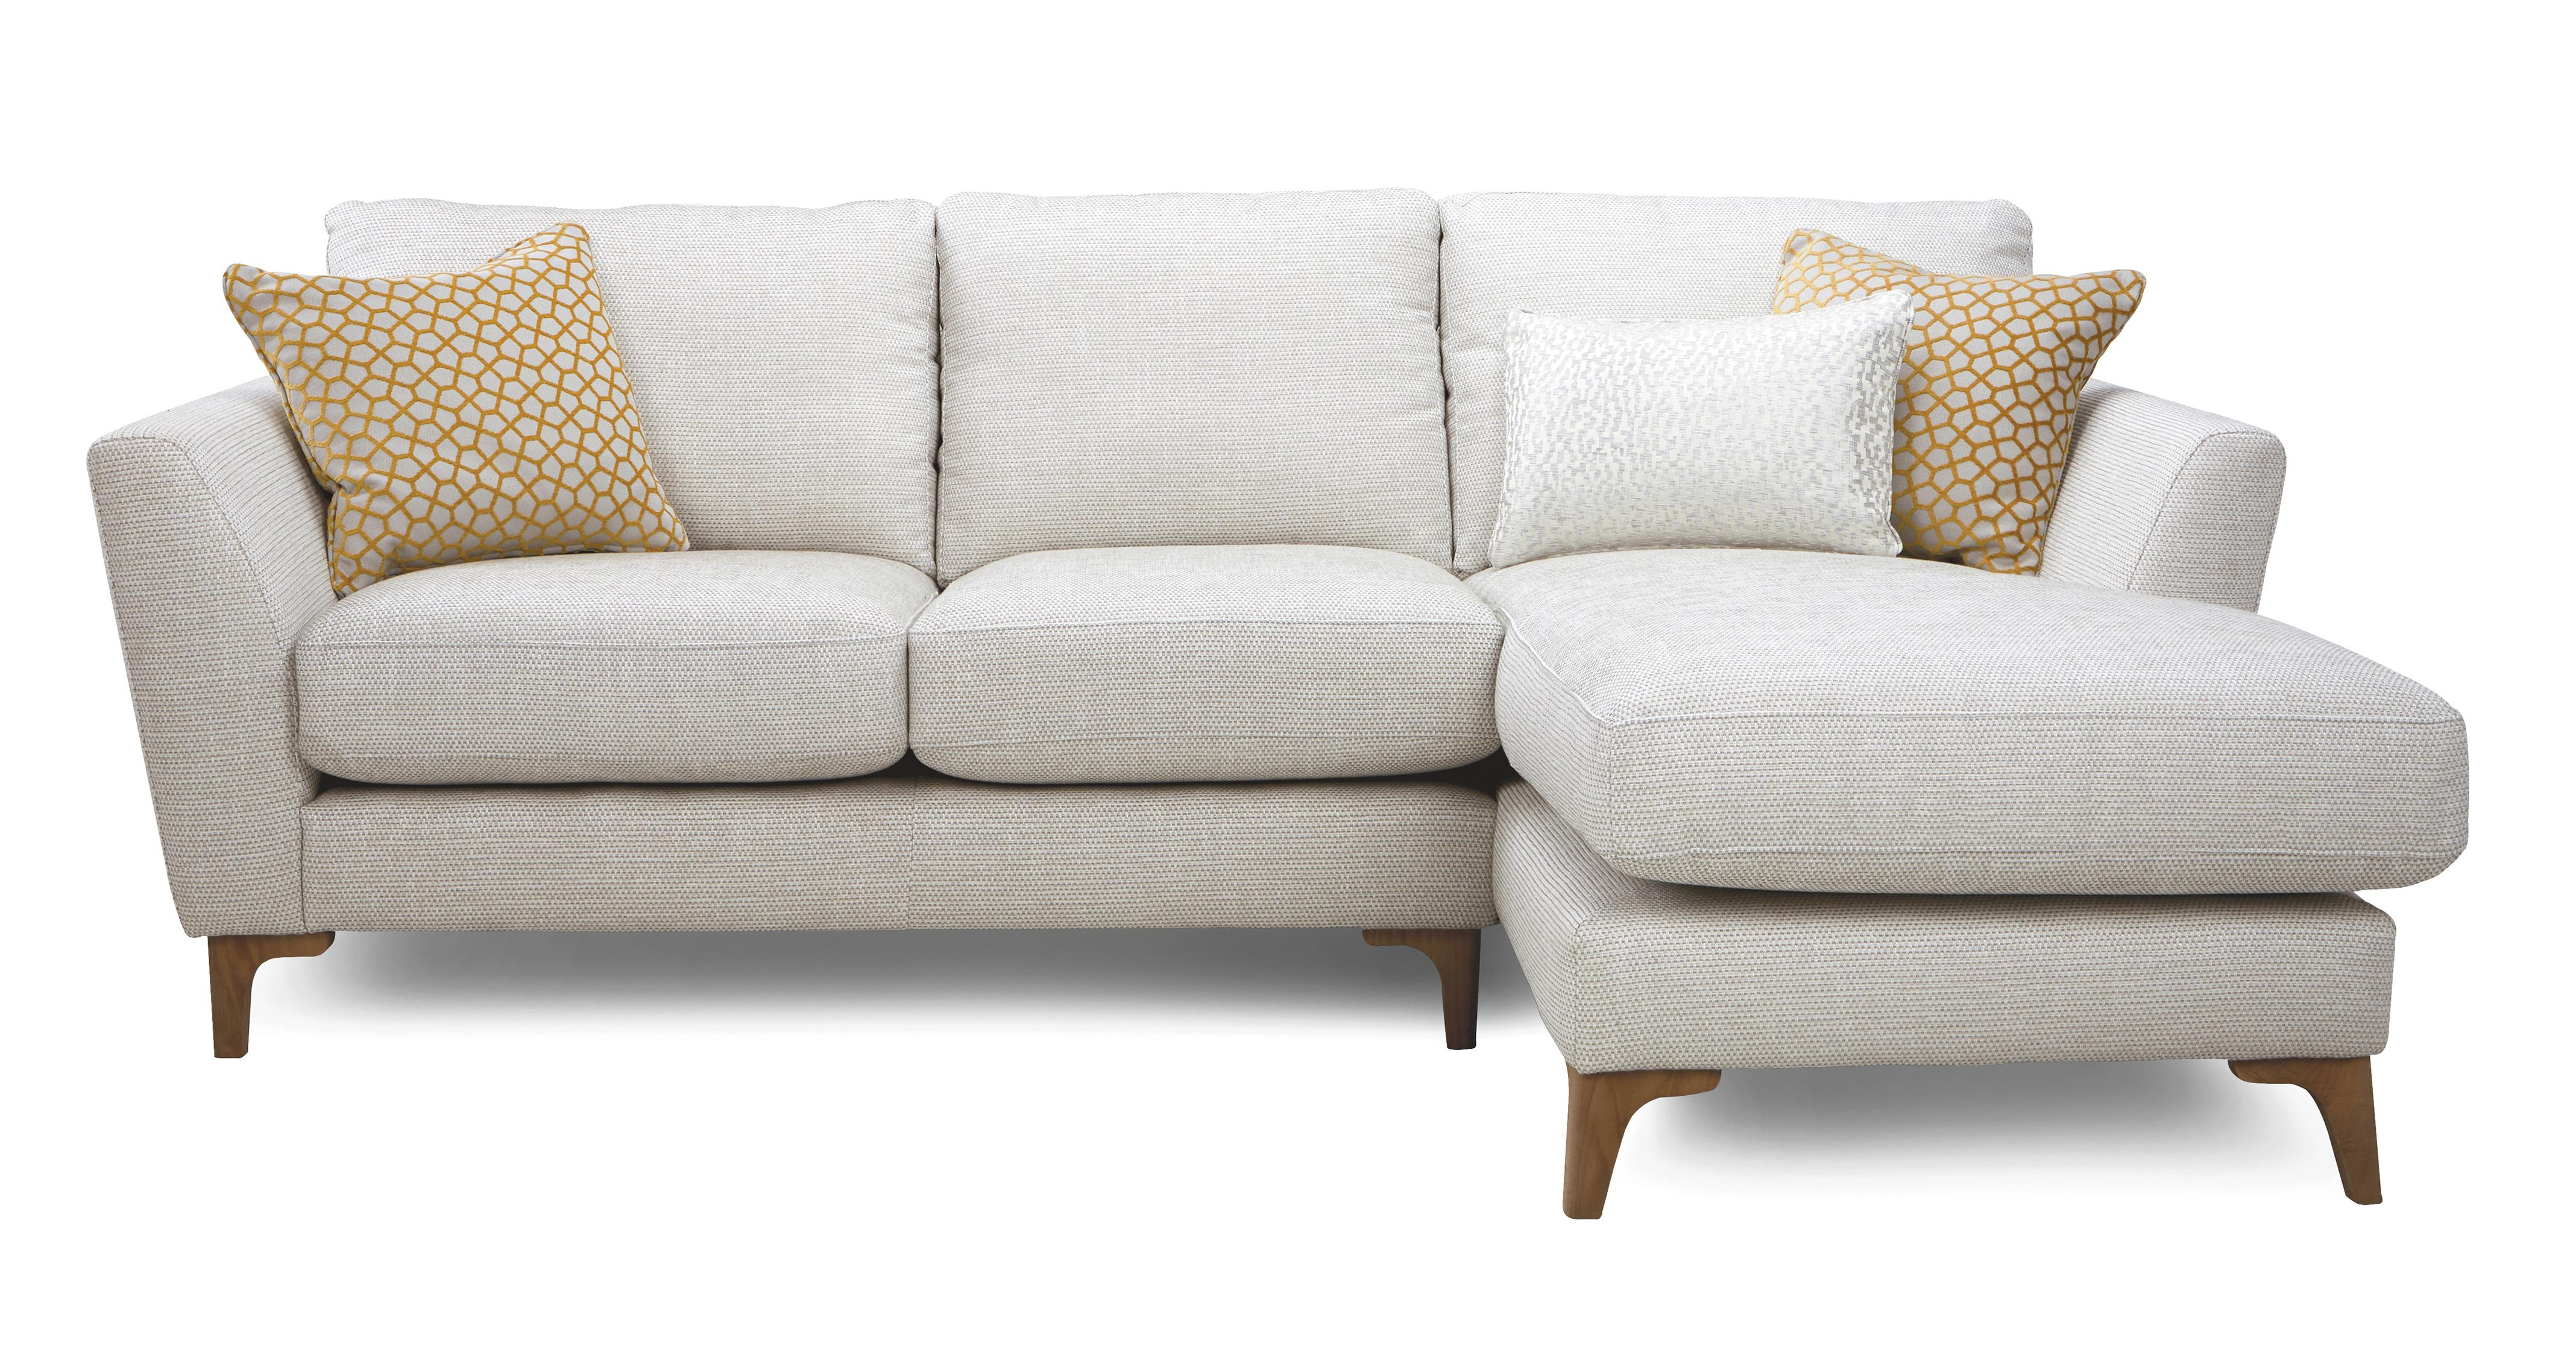 Libby Plain Right Hand Facing Chaise End 2 Seater Sofa Dfs